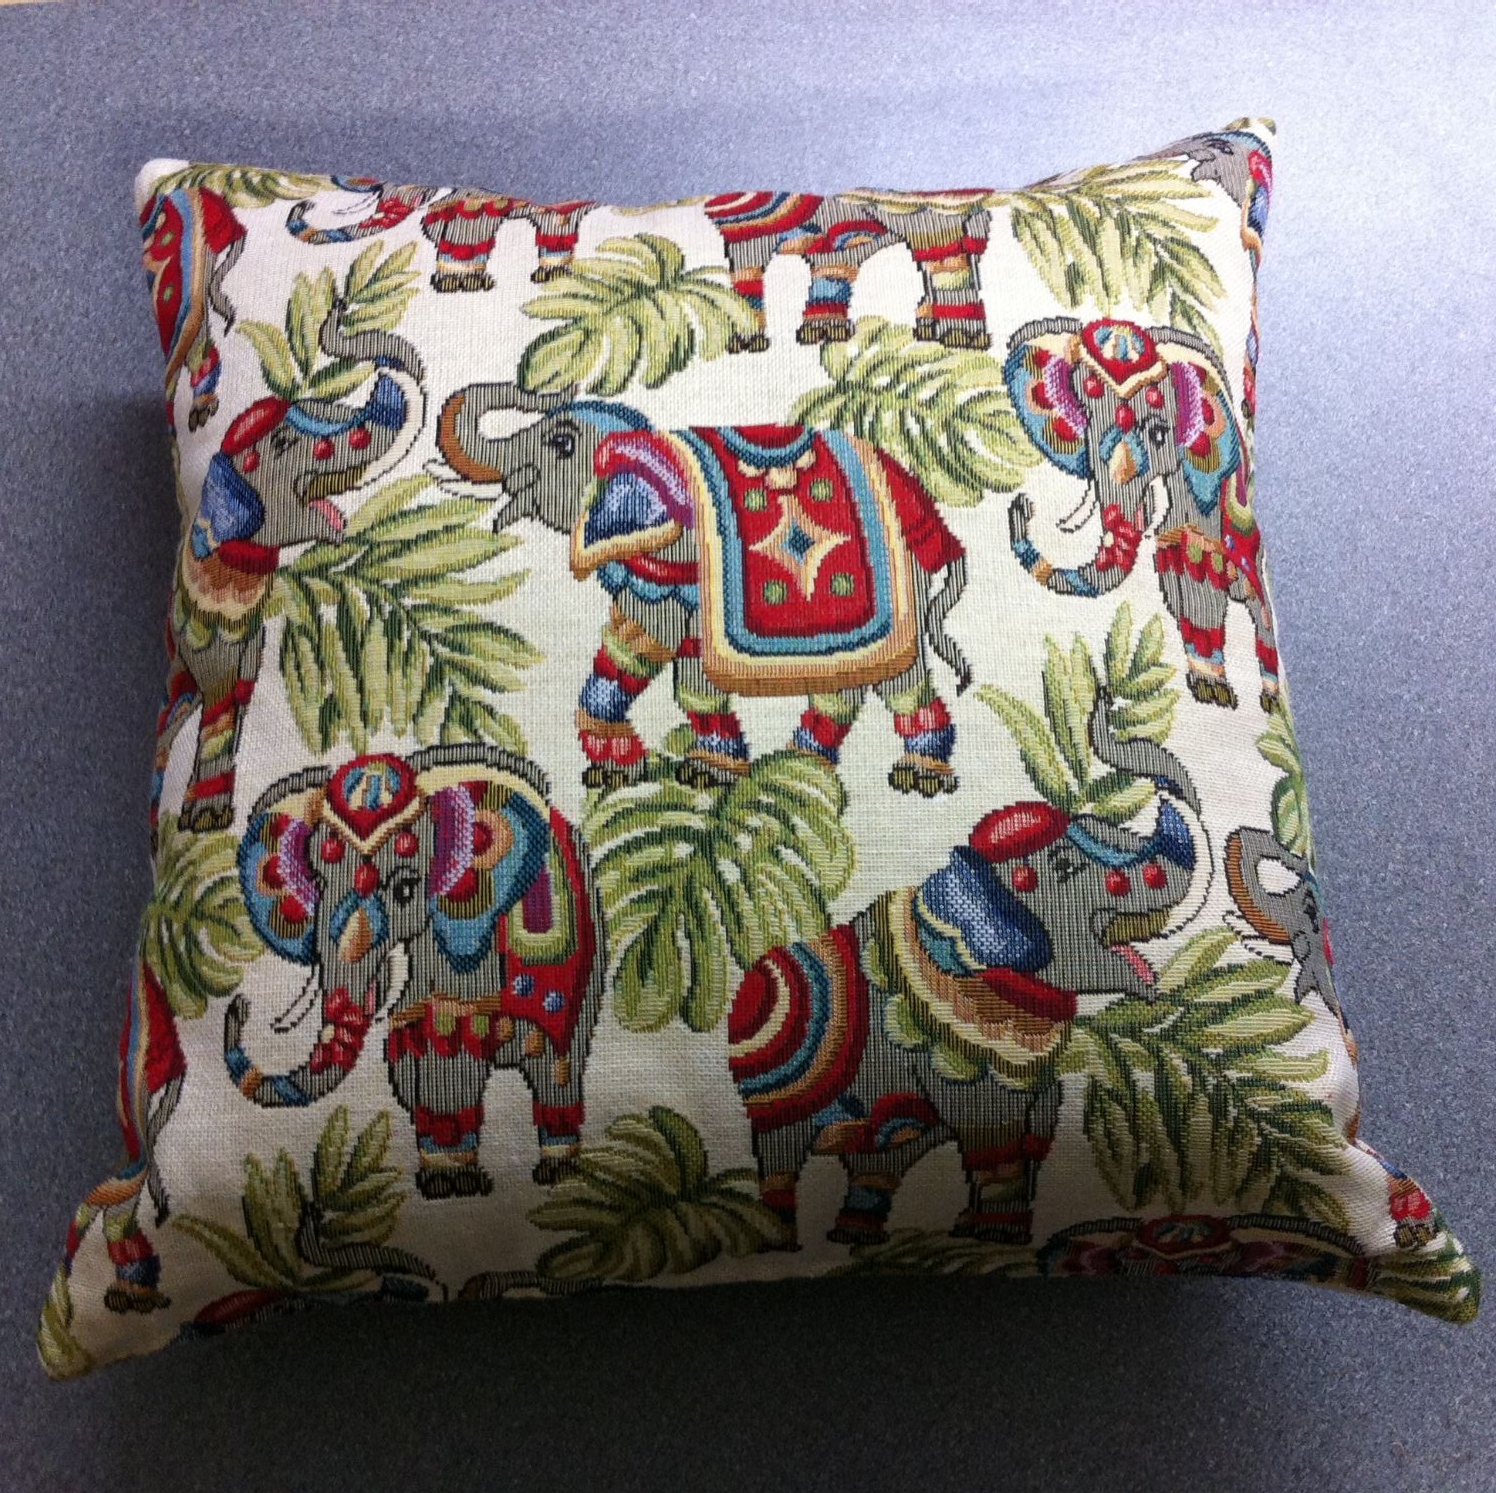 Debby's Patch elephant cushion